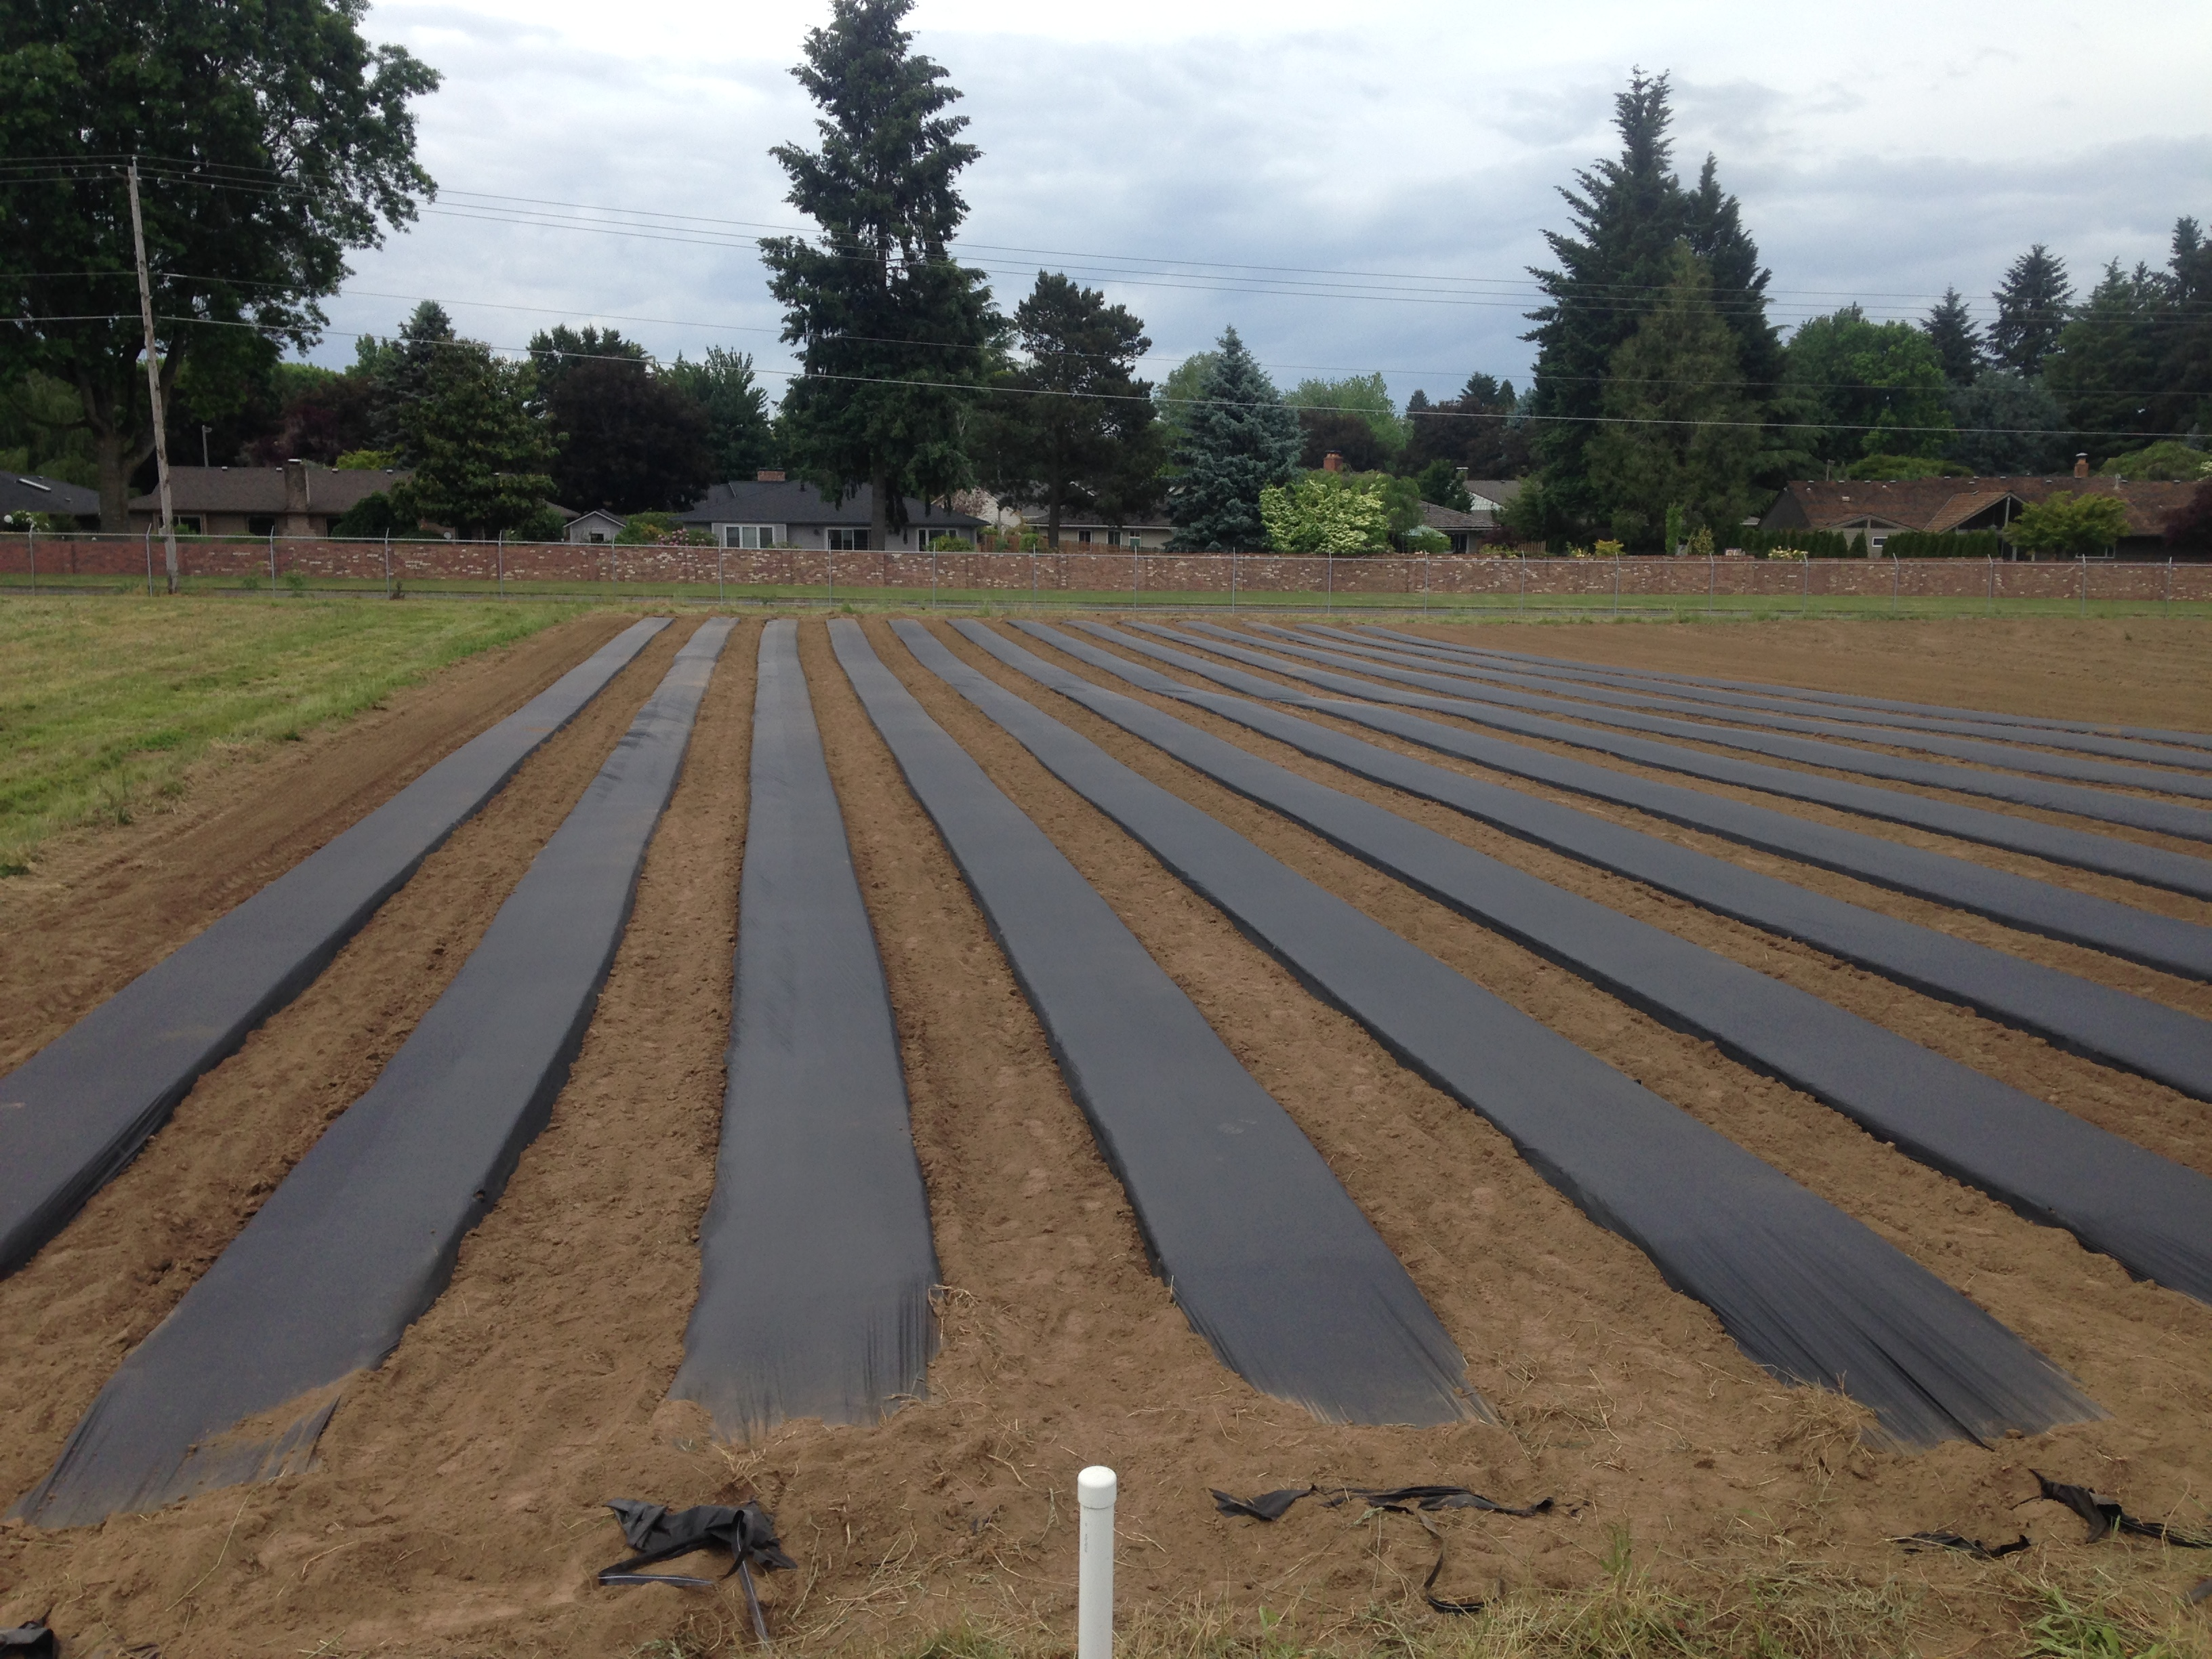 Figure 4. Raised beds topped with drip irrigation and plastic in preparation for planting day-neutral strawberries.